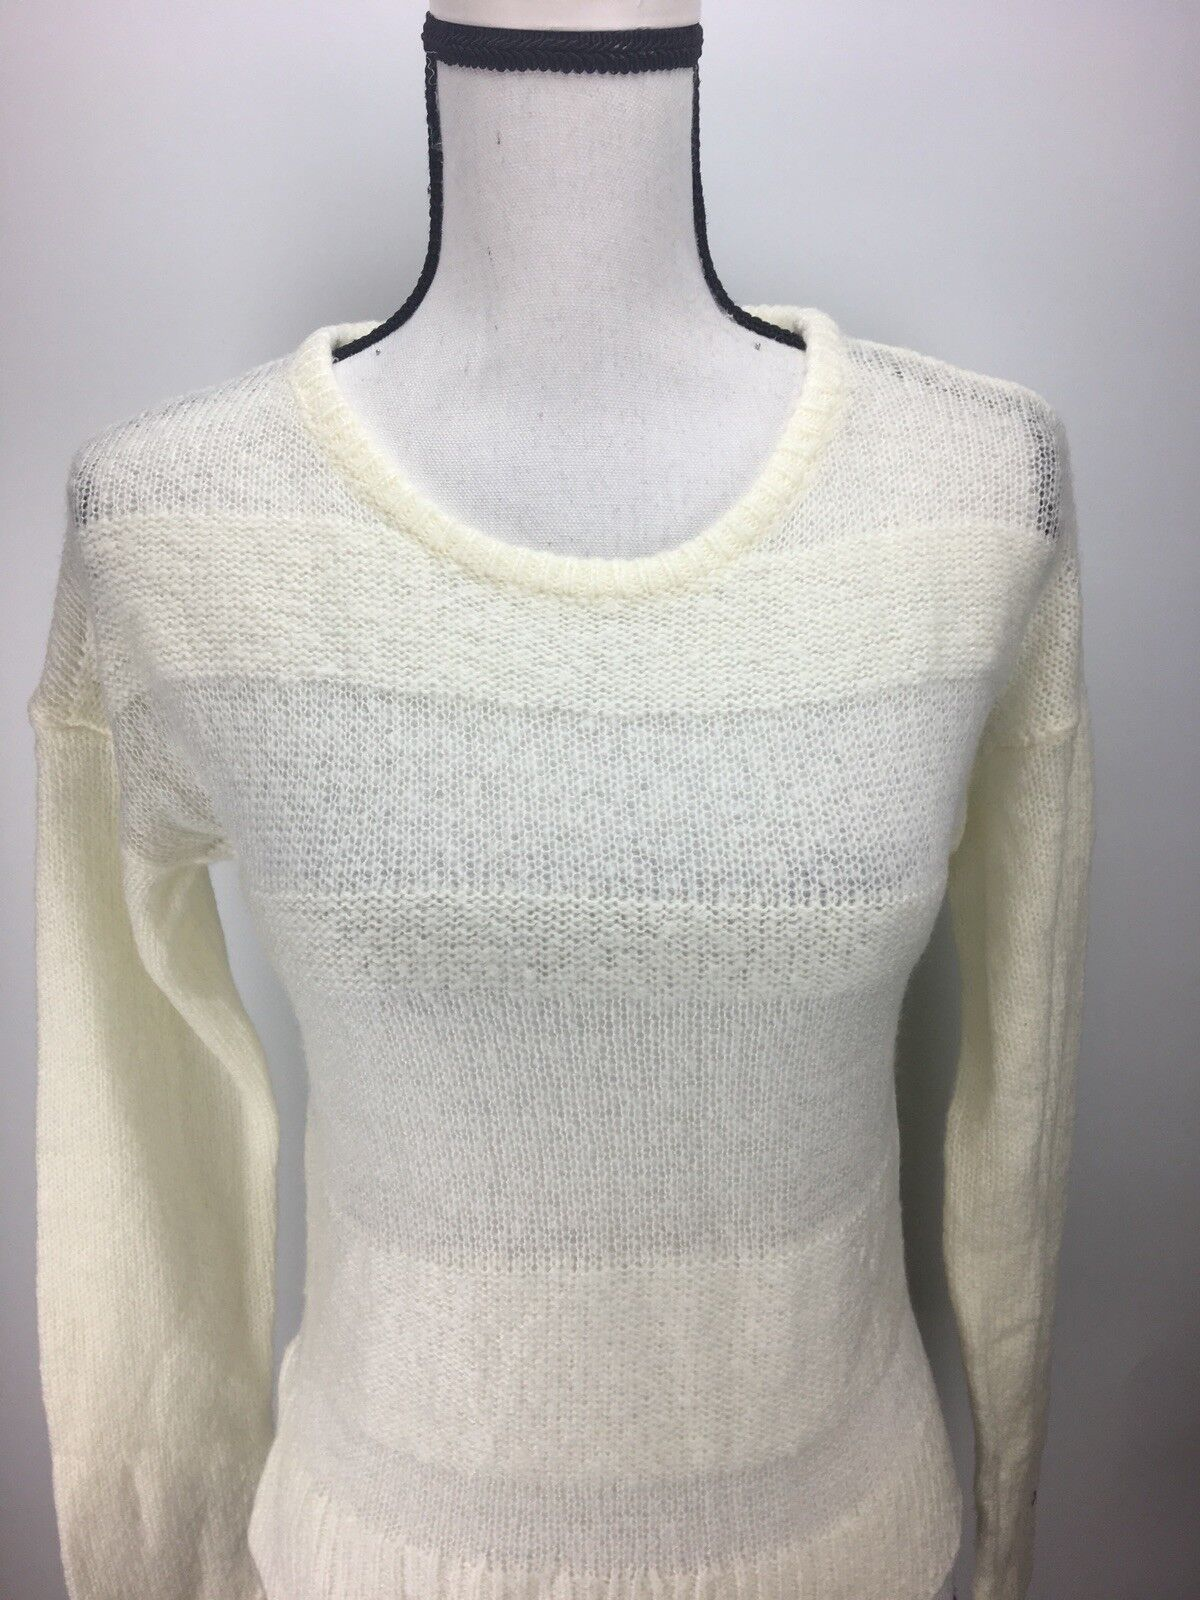 Wild Pearl Pullover Sweater Junior Size Long Sleeve Fuzzy Crewneck Rob Knit Edge